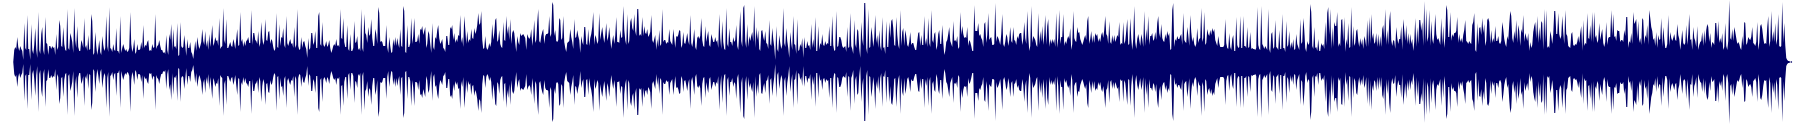 waveform of track #69667